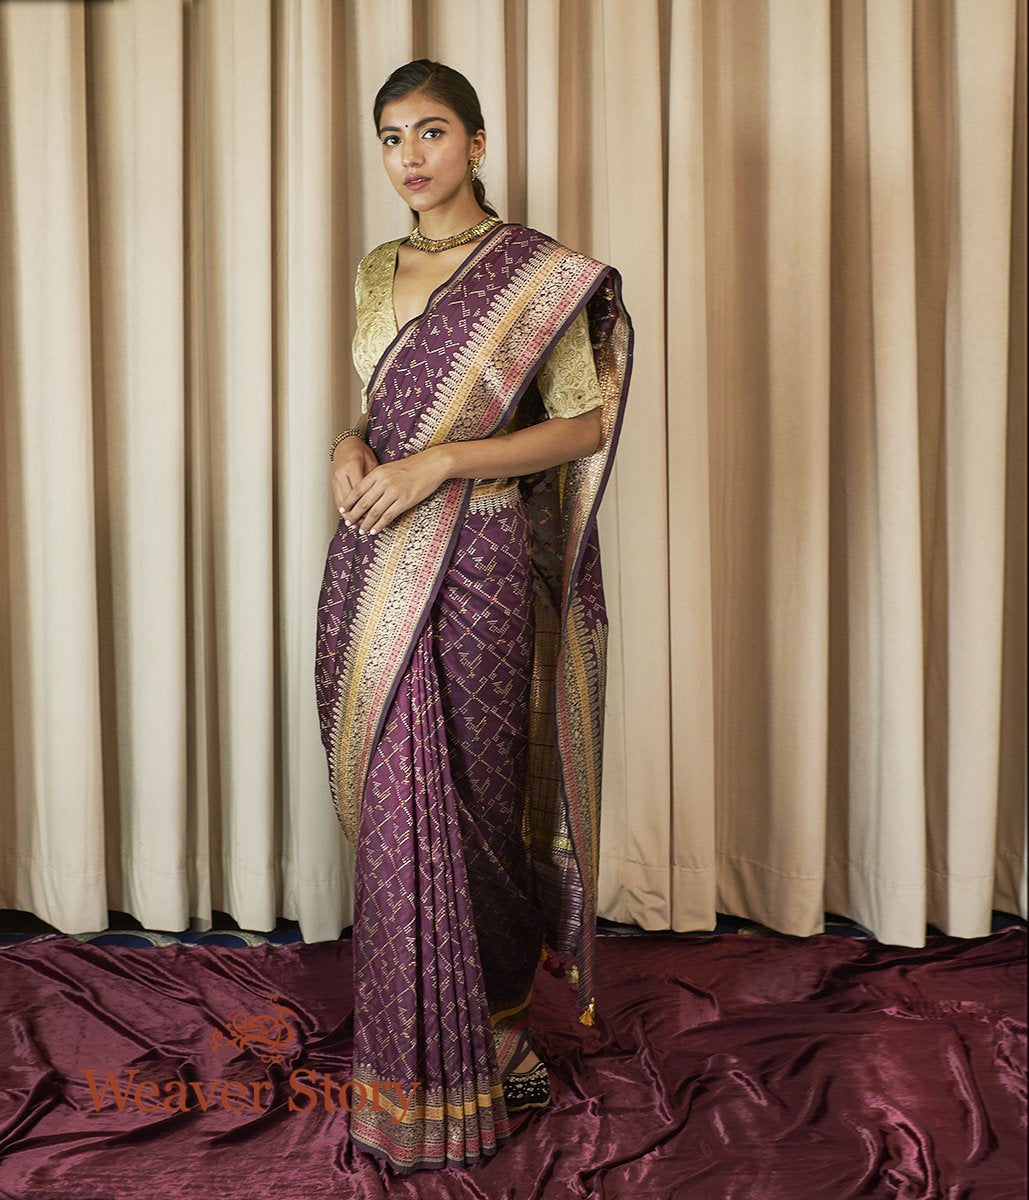 Handwoven Wine Meenakari Patola Saree with Kadhwa Floral Border